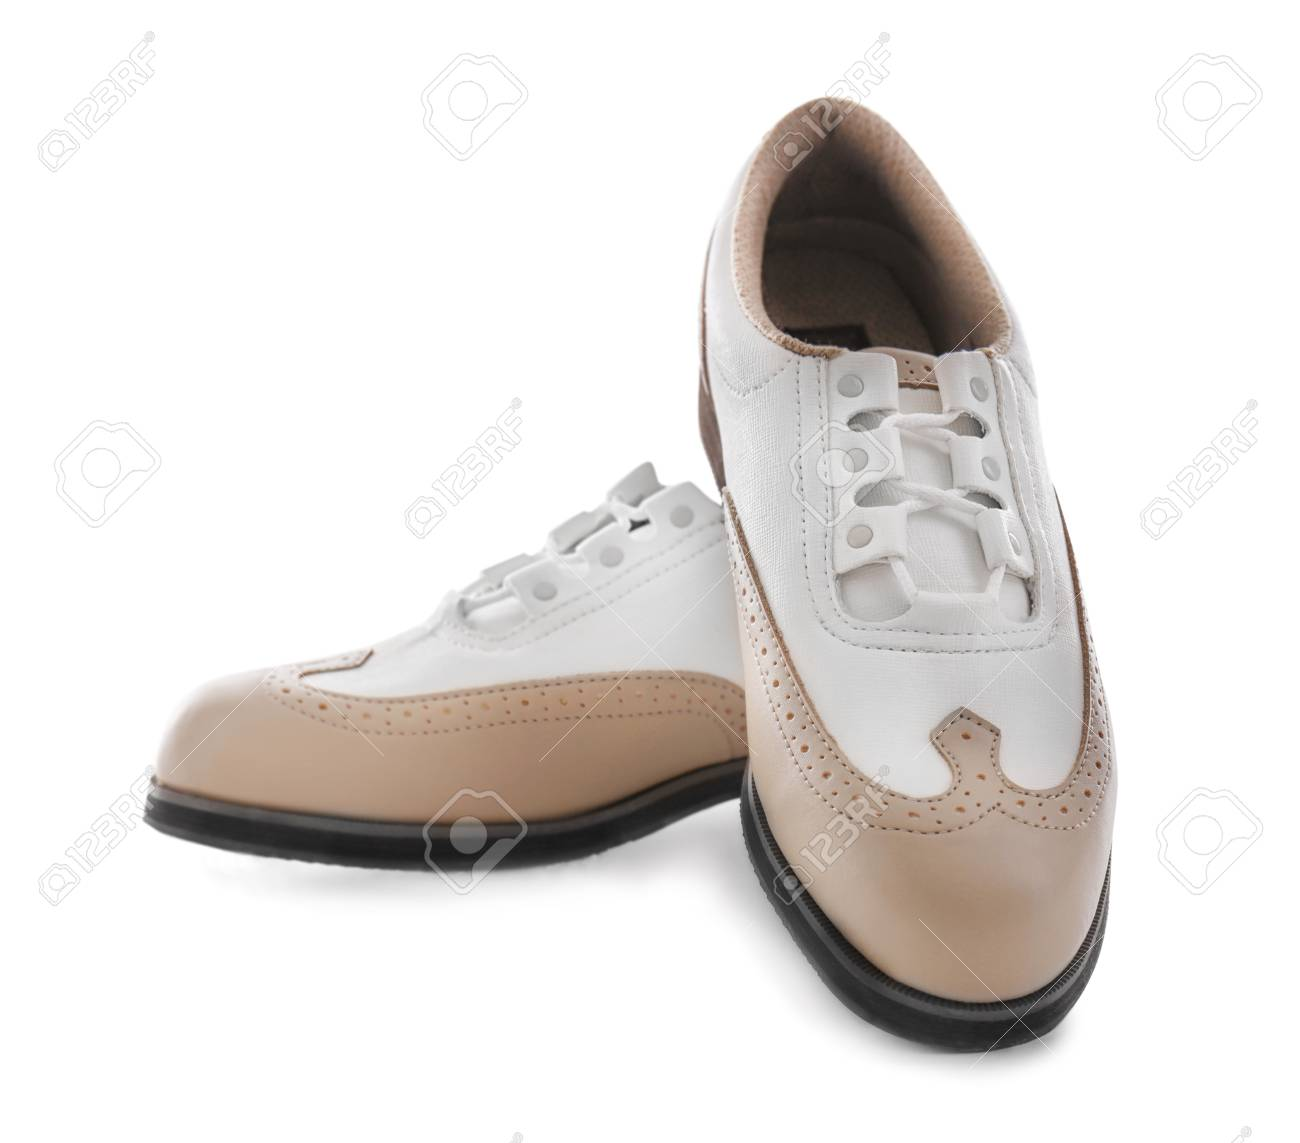 Pair Of Female Golf Shoes On White